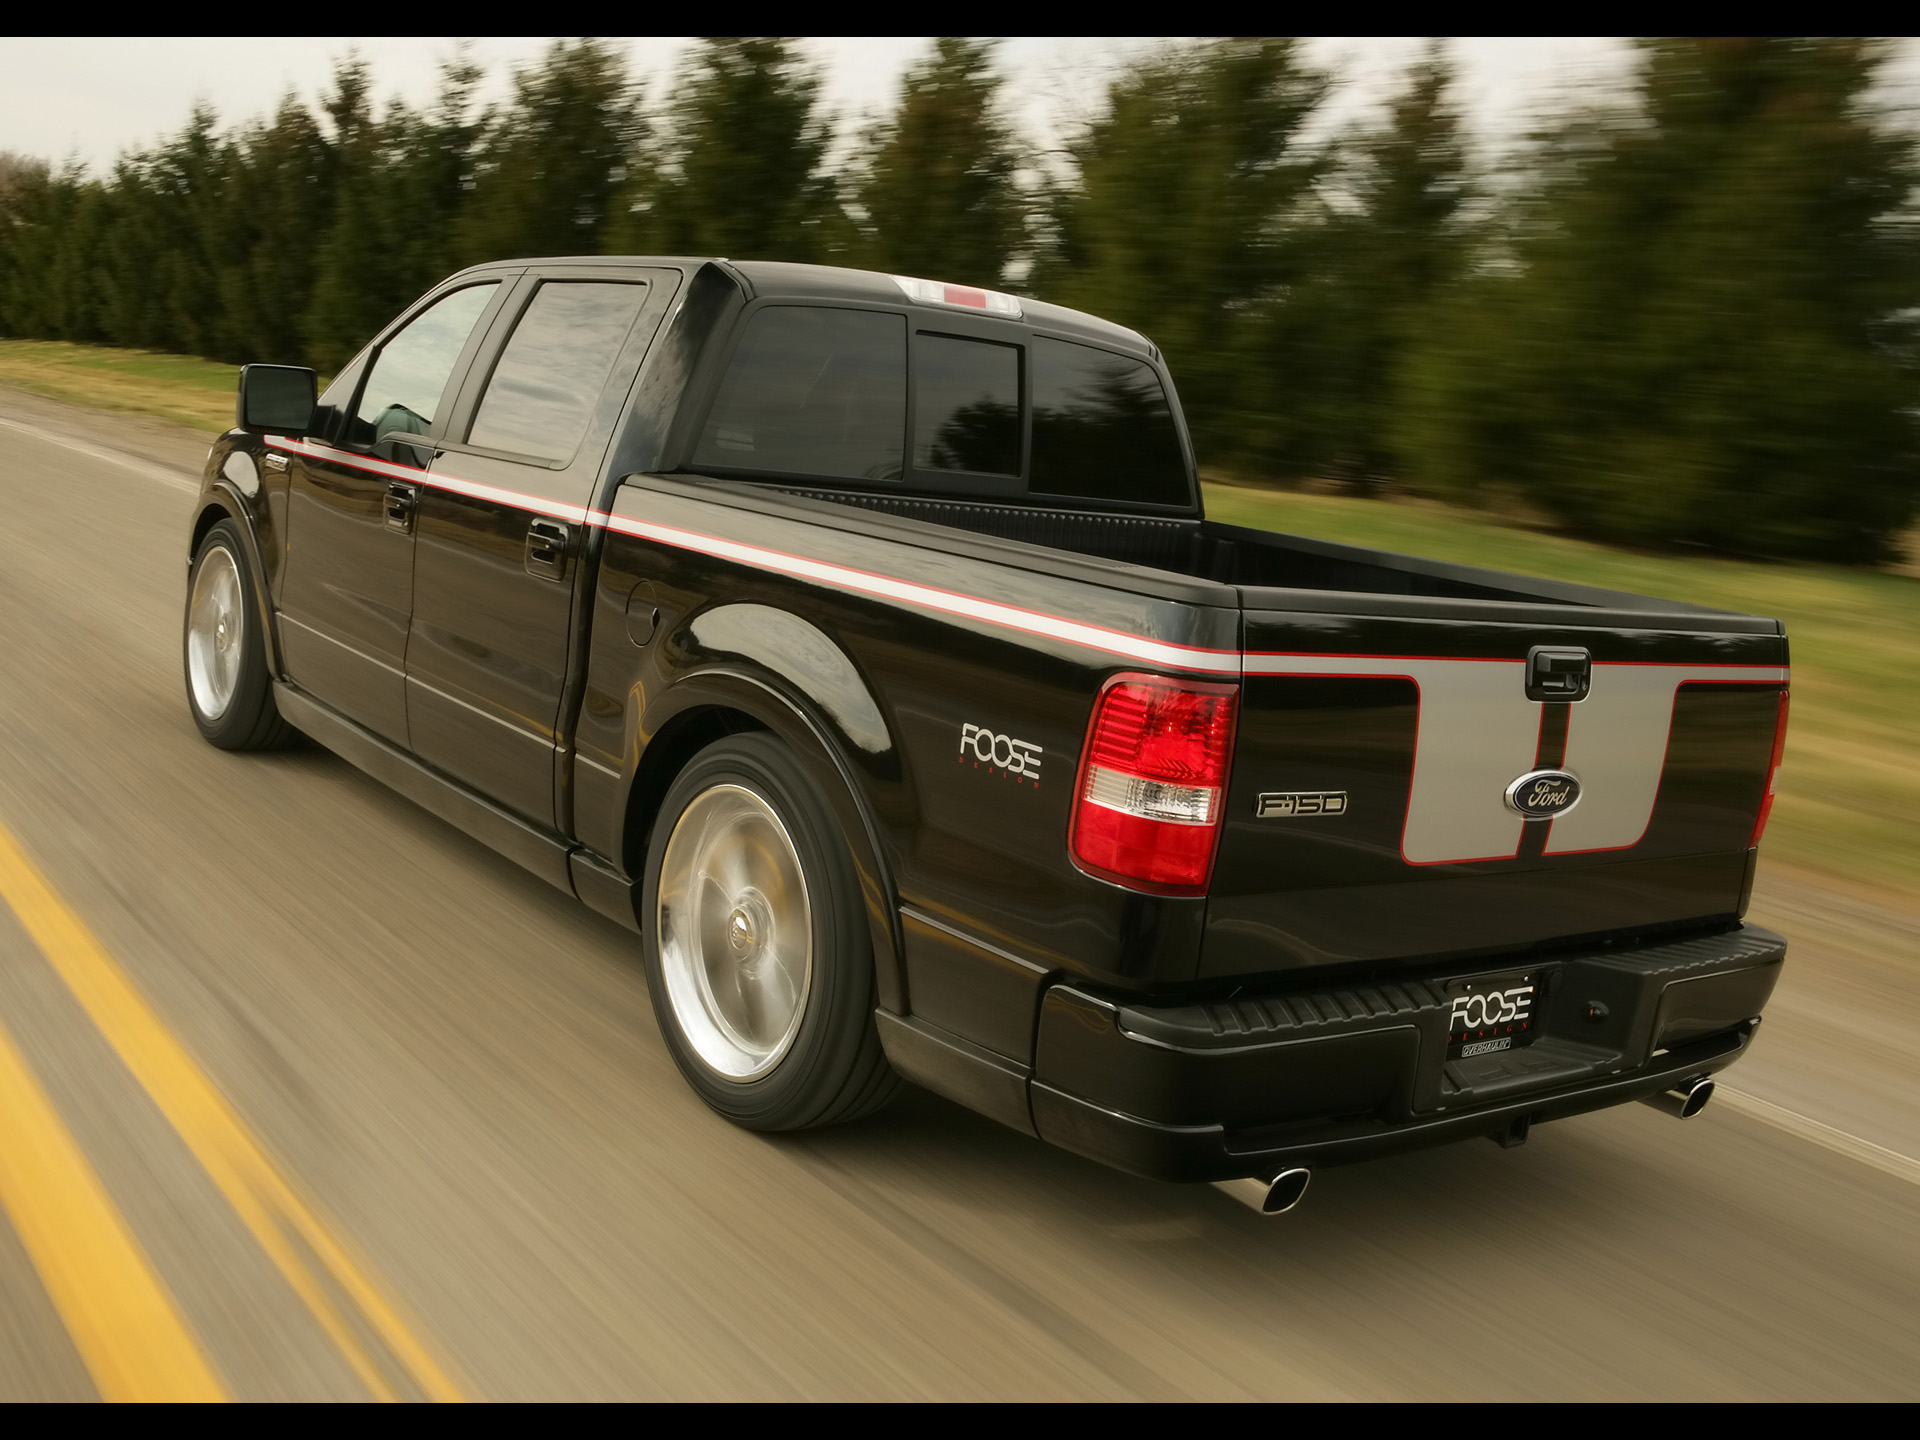 Ford F-150 photo 42934